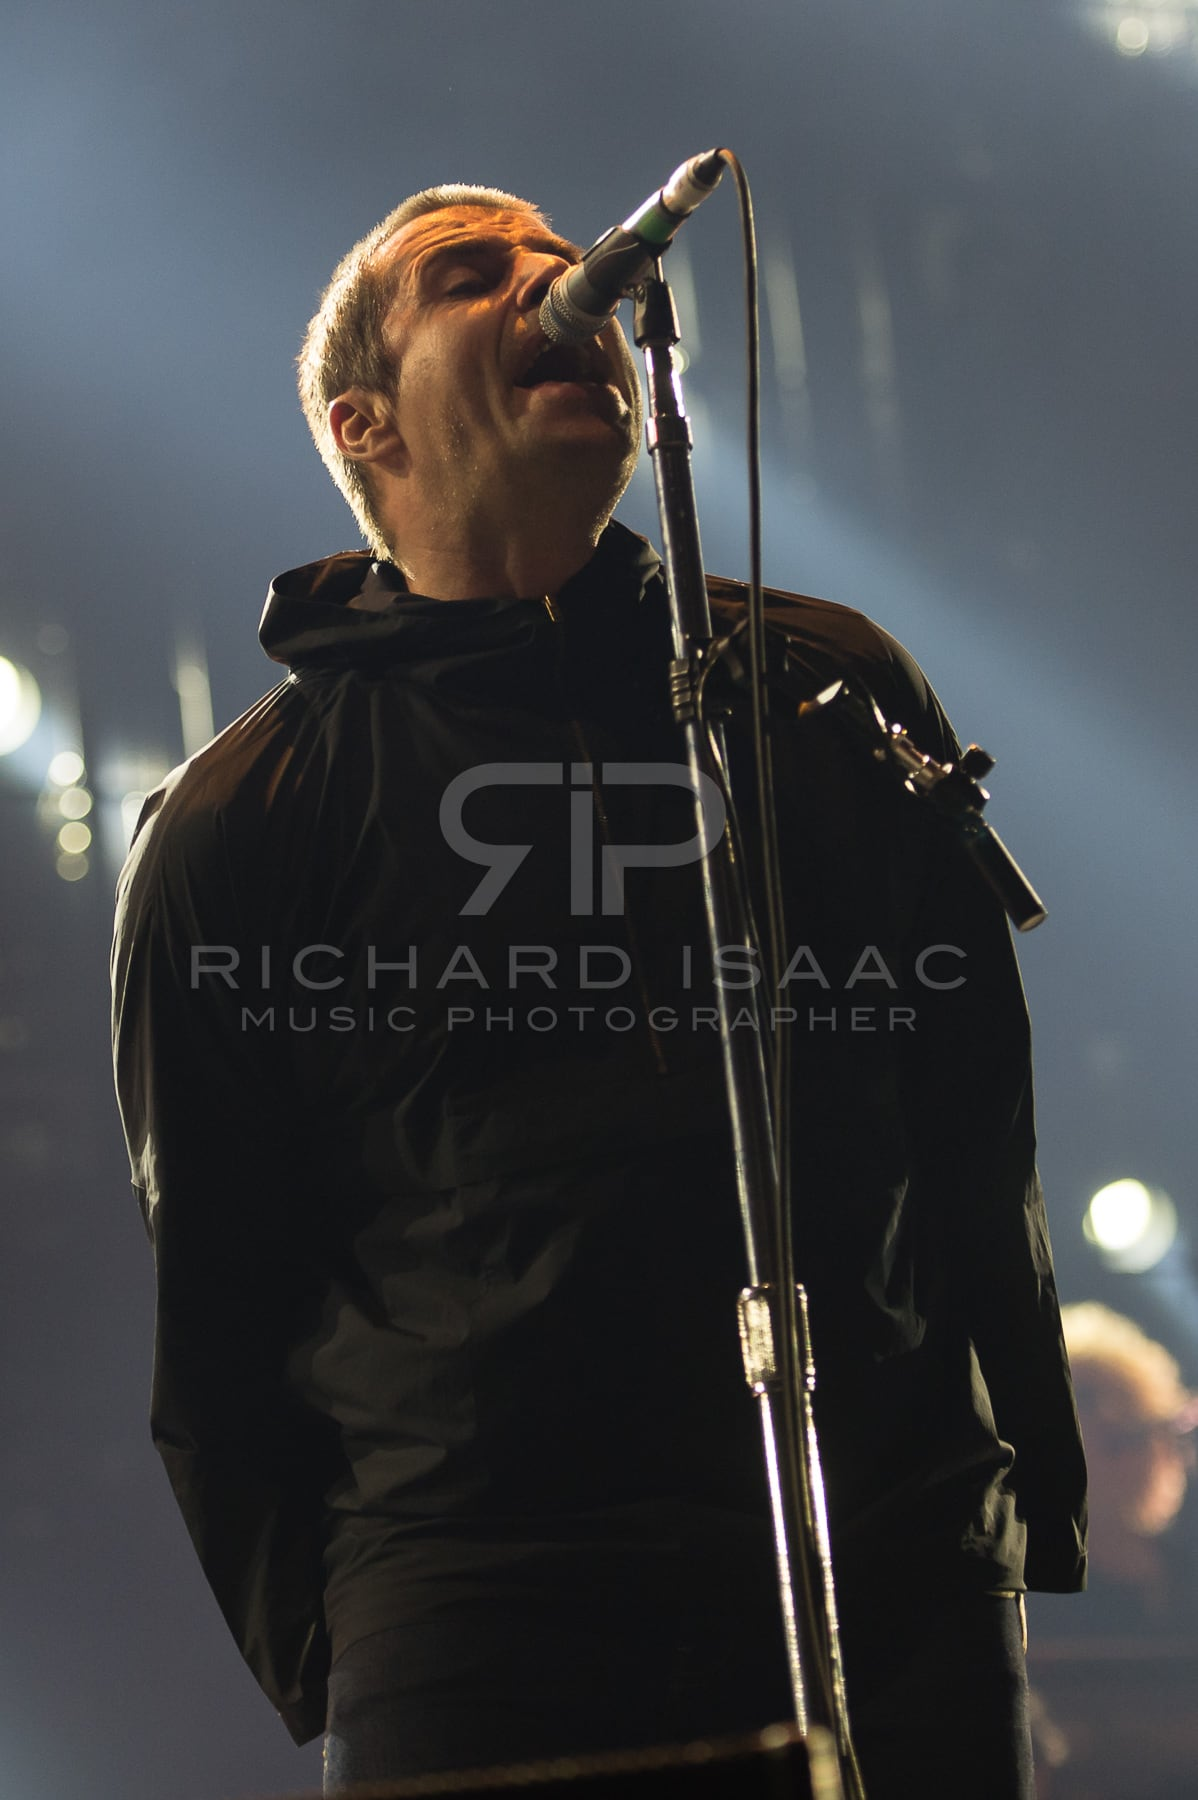 20191128-Liam-Gallagher-o2-018